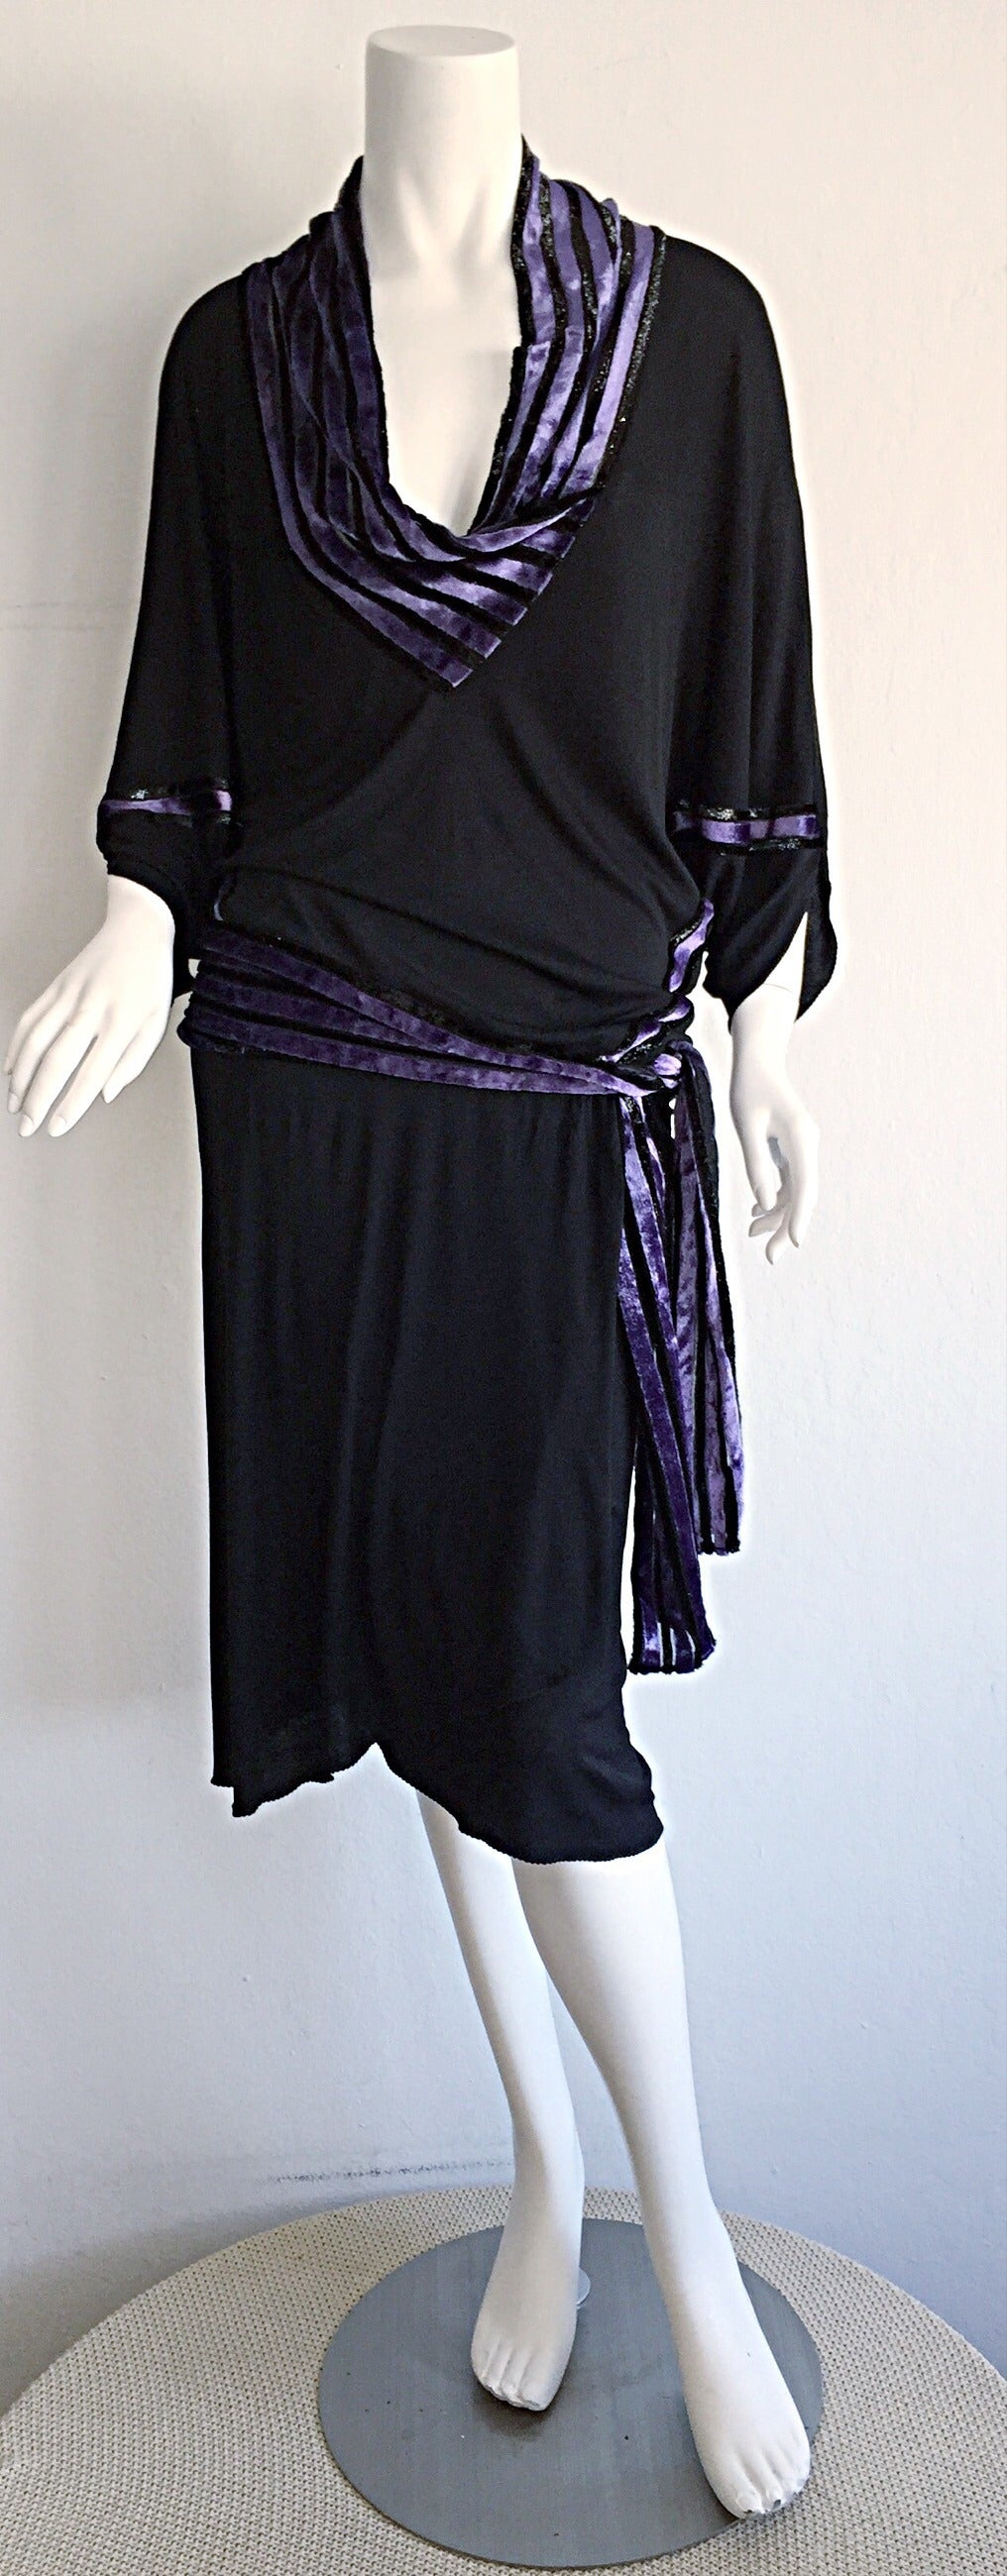 """Iconic Vintage Janice Wainwright Black Flapper Style """" Roaring 20s"""" Jersey Dress In Excellent Condition For Sale In San Francisco, CA"""